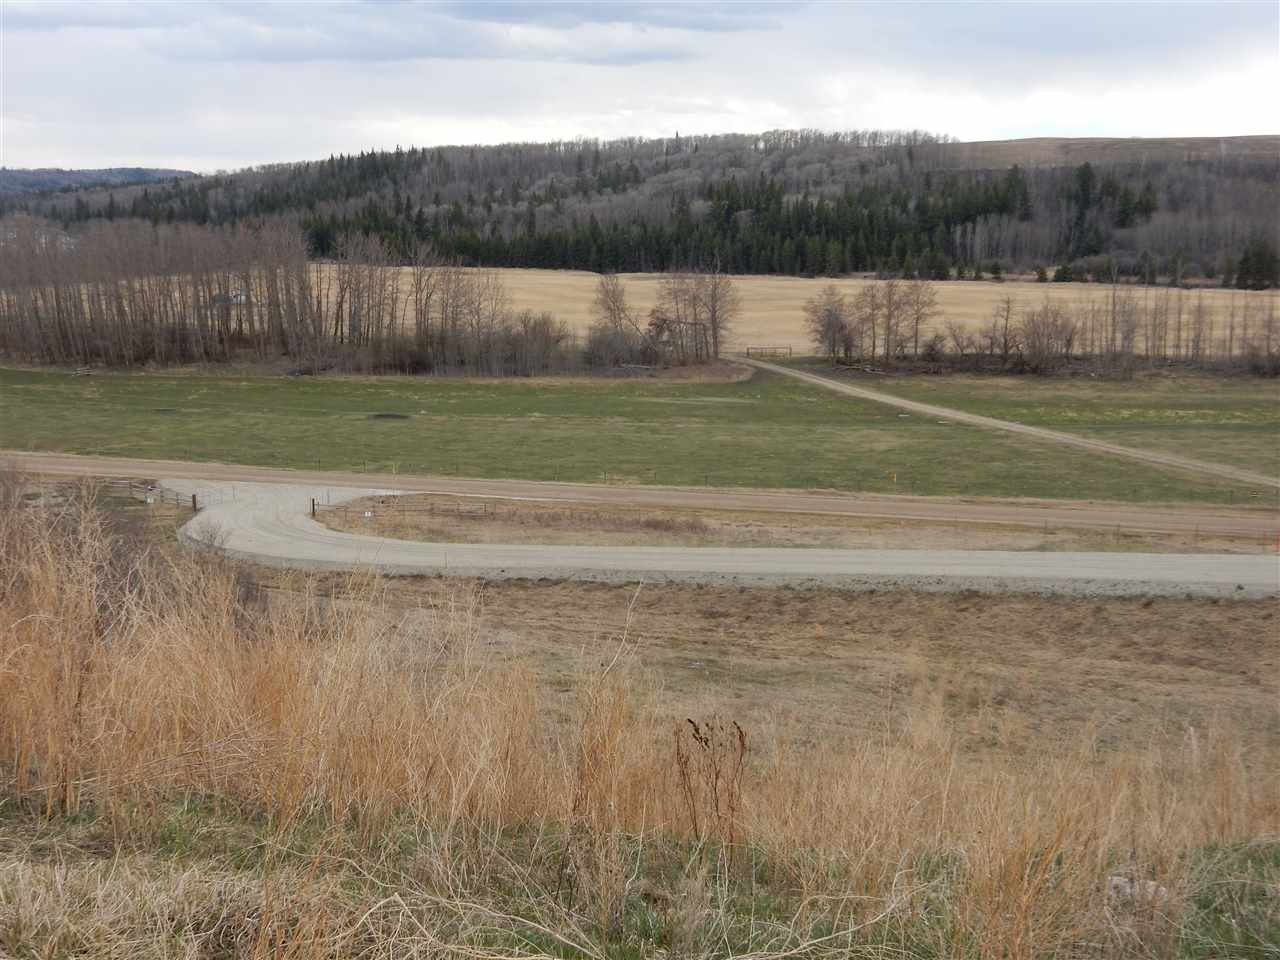 Photo 8: Photos: TWP ROAD 492 RANGE ROAD 234: Rural Leduc County Rural Land/Vacant Lot for sale : MLS®# E4155541